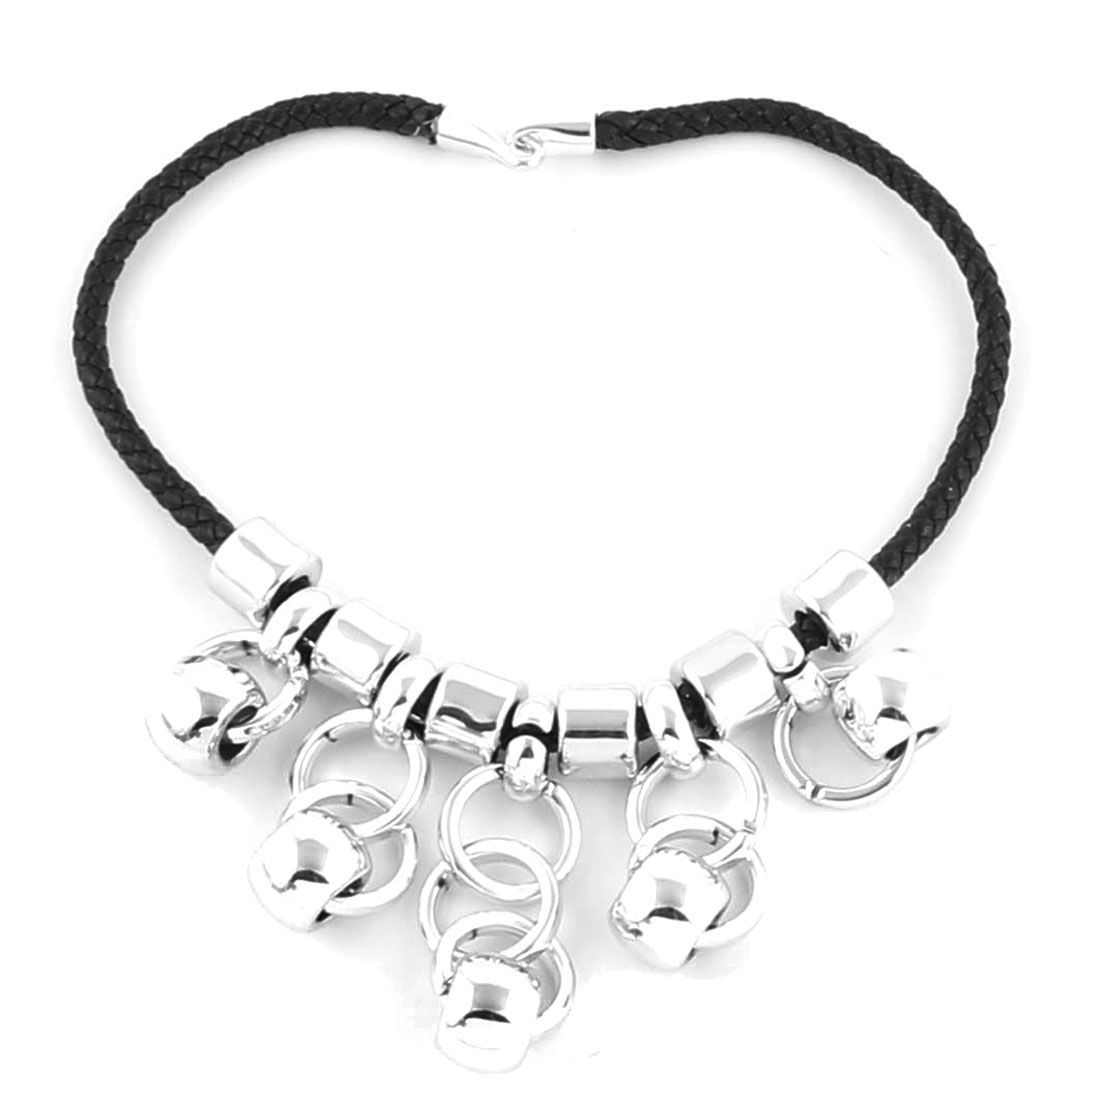 Women Nylon String Plastic Ring Shaped Pendant Clothes Sweater Necklace Silver Tone Black 42cm Girth